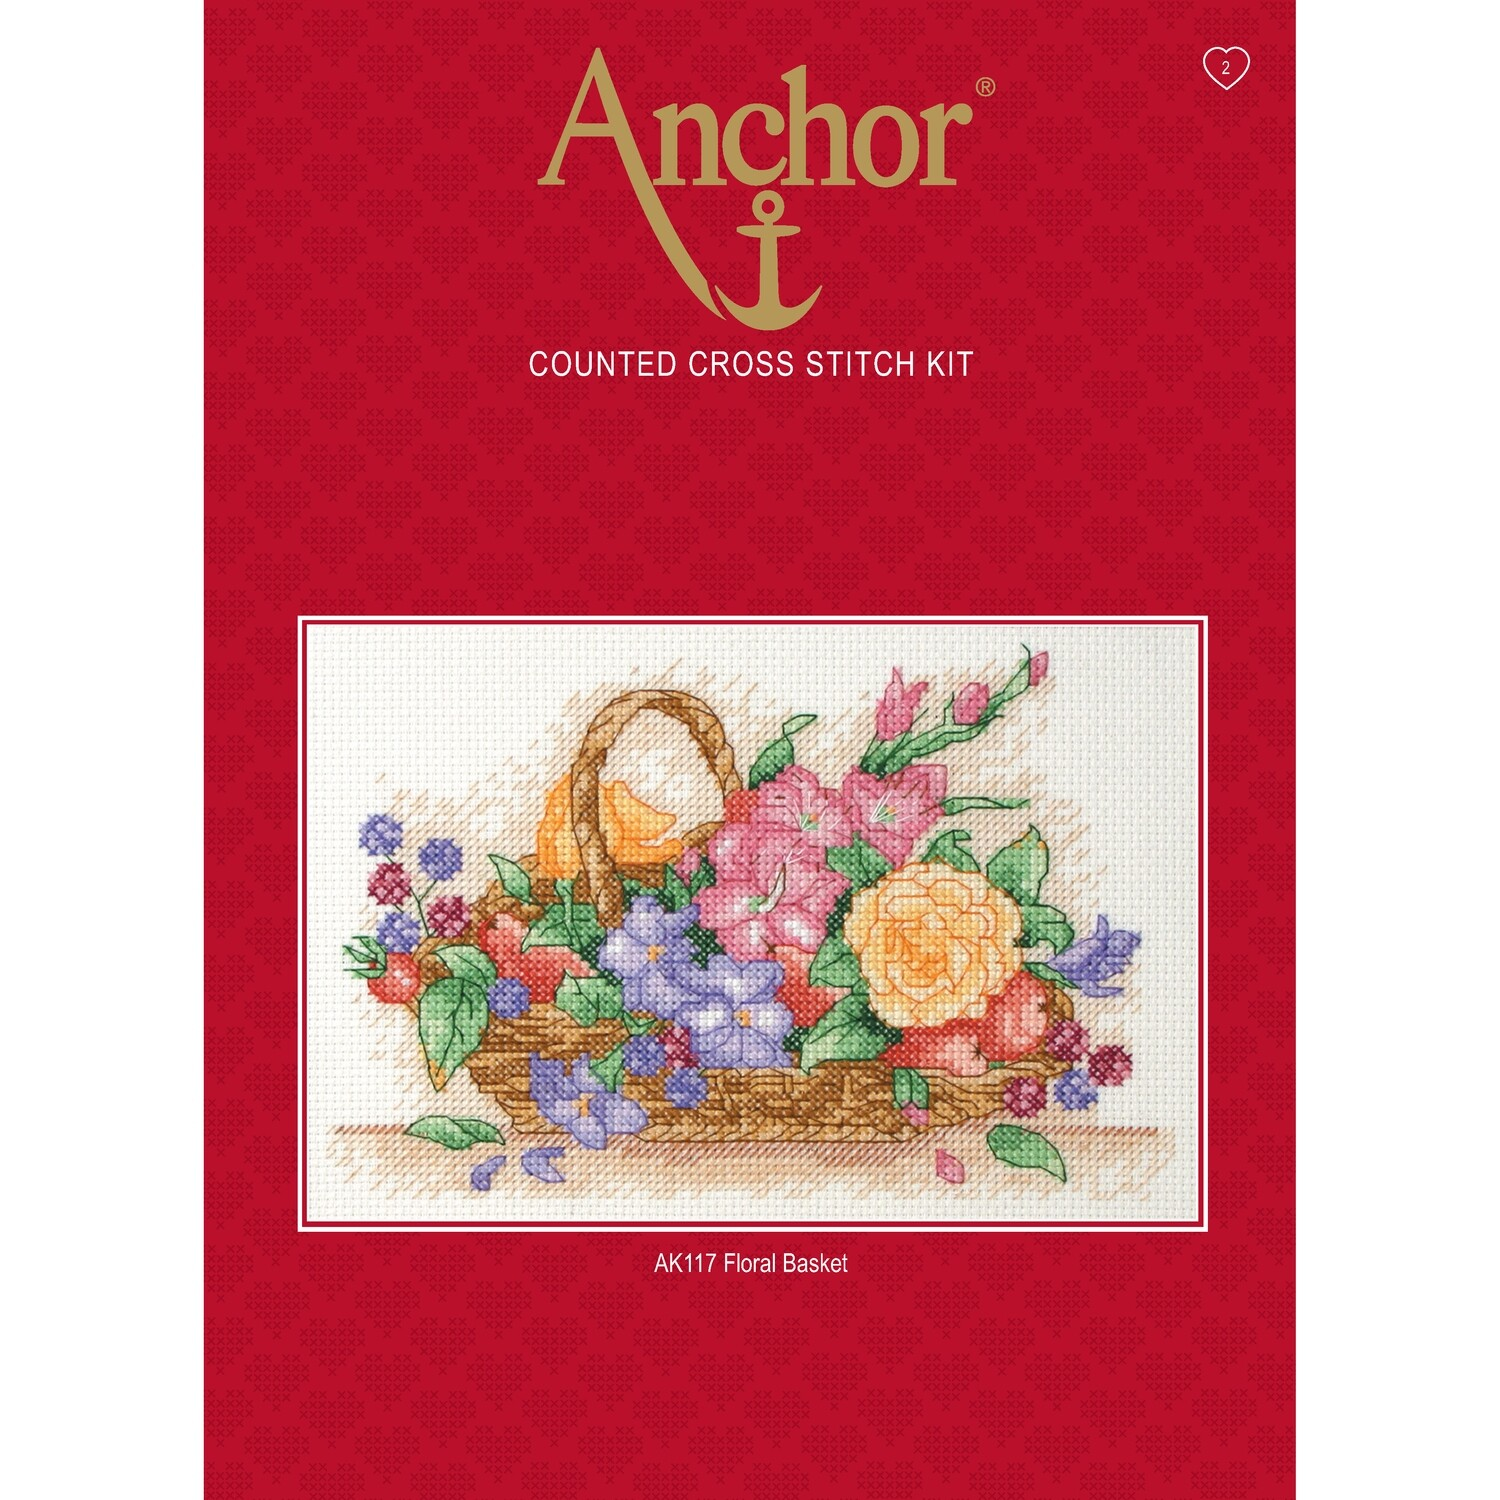 Anchor Starter Cross Stitch Kit - Floral Basket